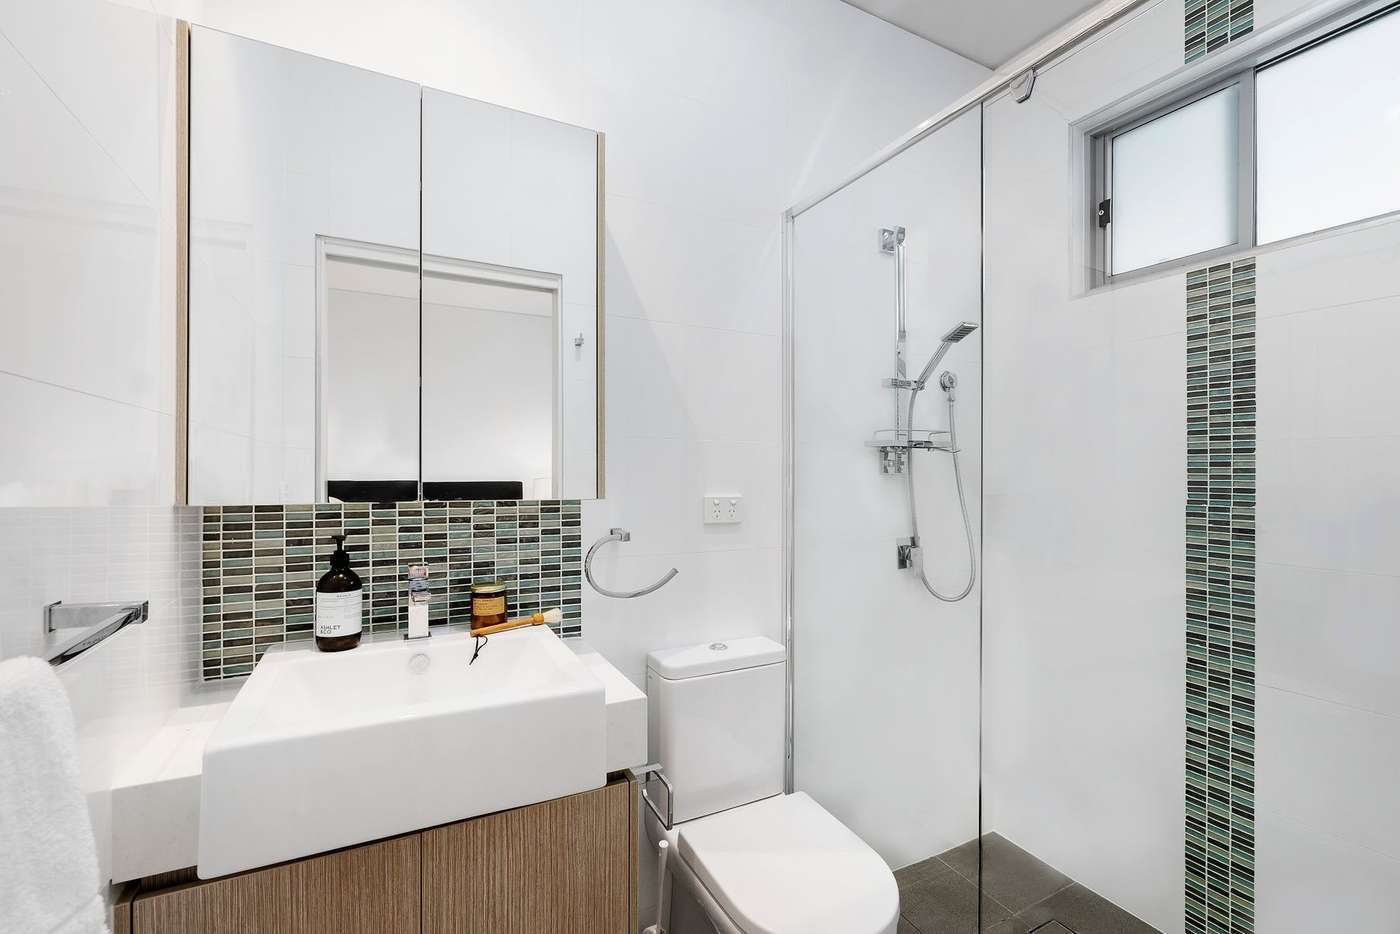 Fifth view of Homely apartment listing, 88/212-216 Mona Vale Road, St Ives NSW 2075